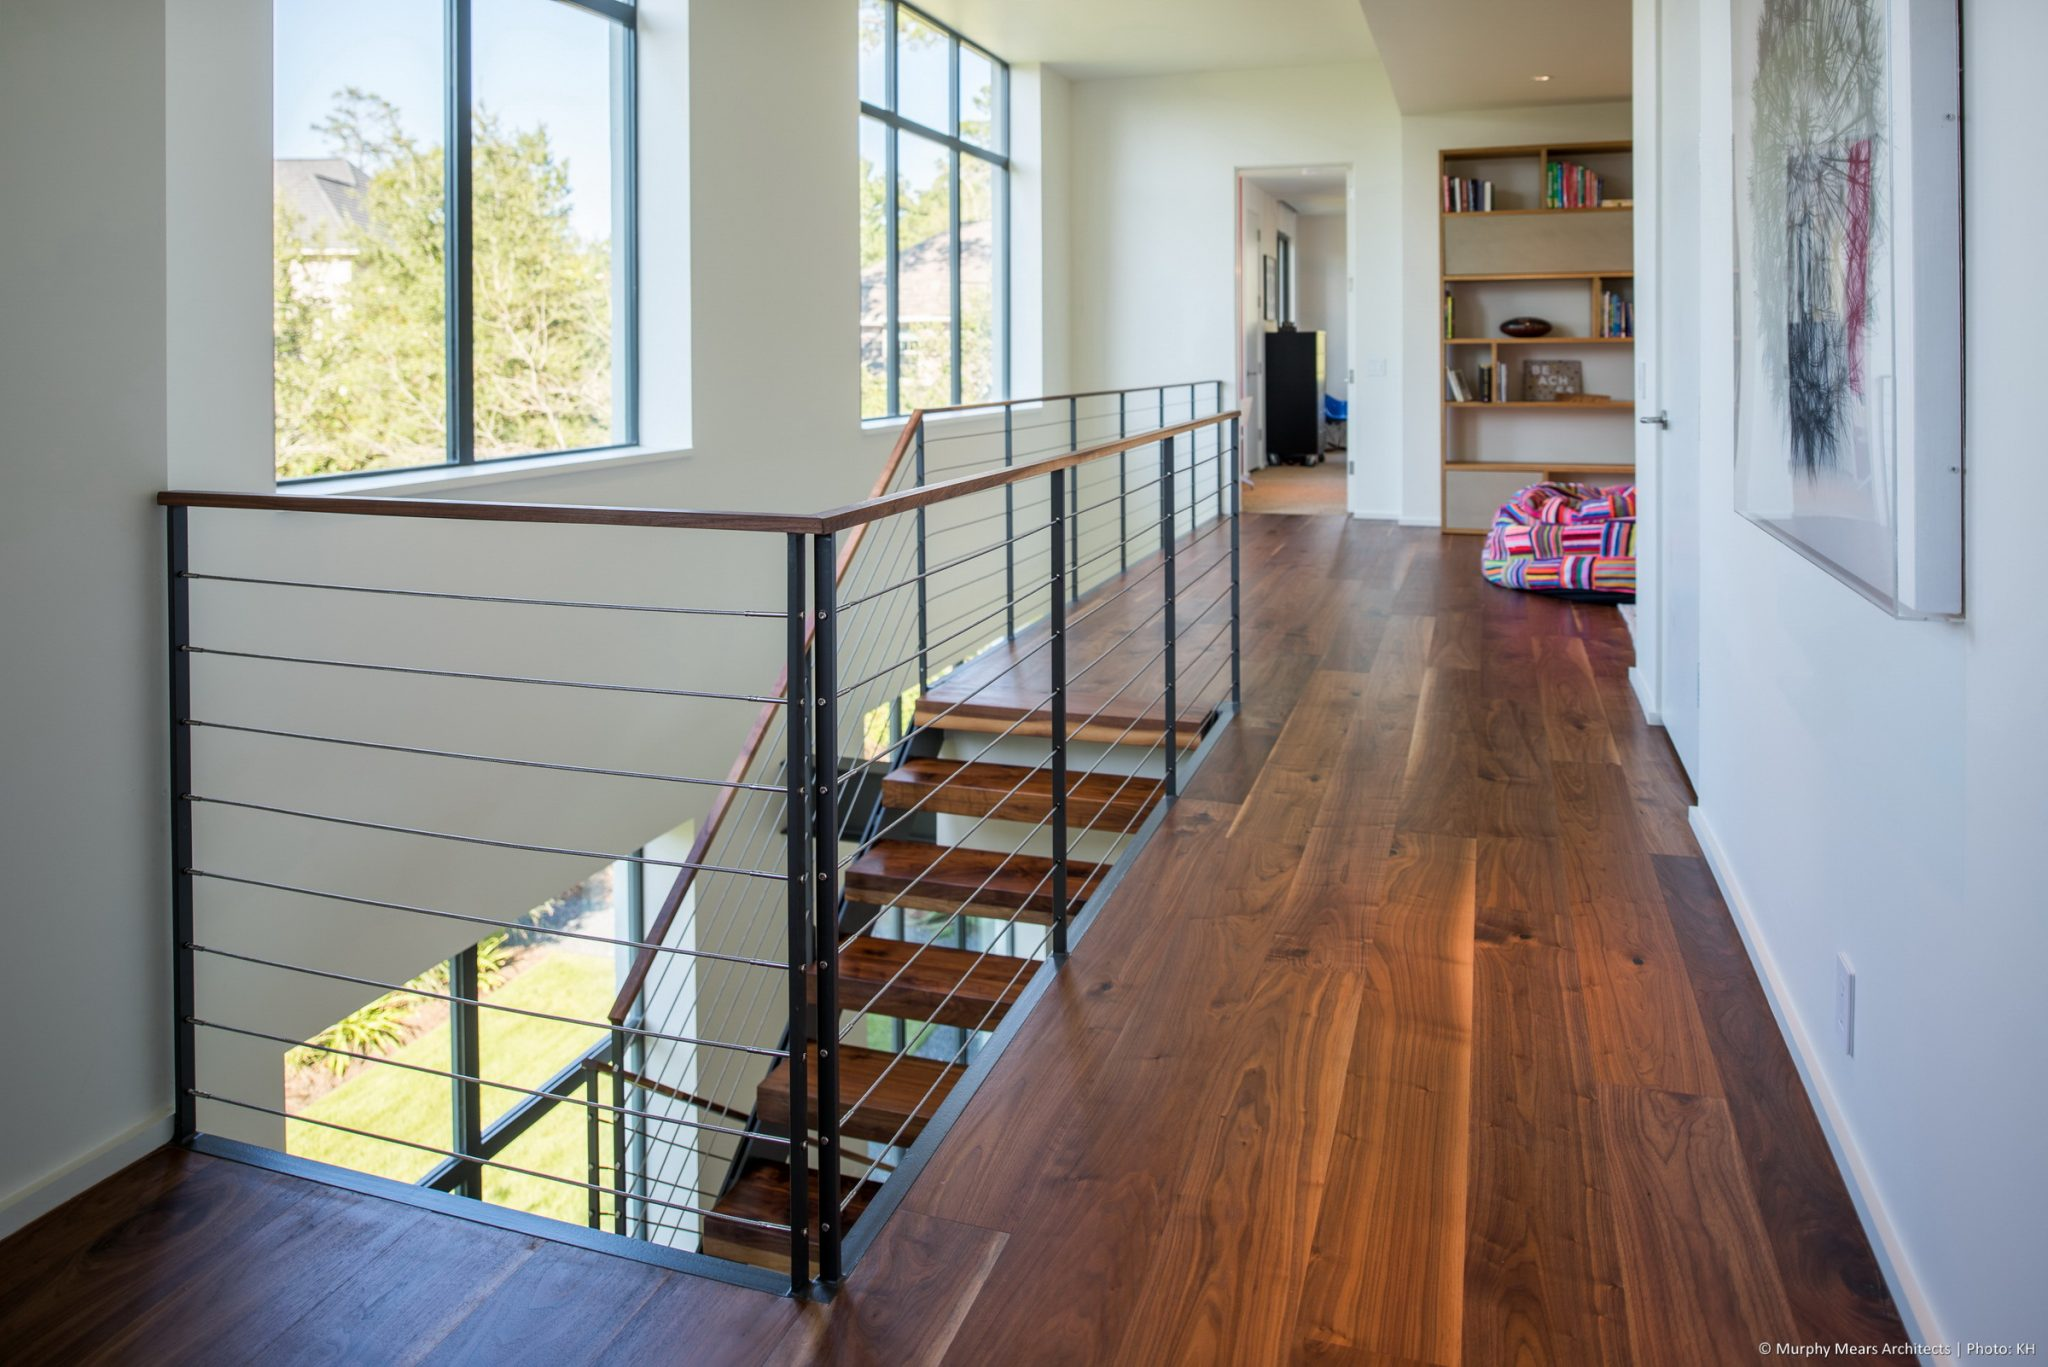 Carlton Woods Residence - The open stair arrives at a central second floor sitting room overlooking a two-story interior space along the front of the house.